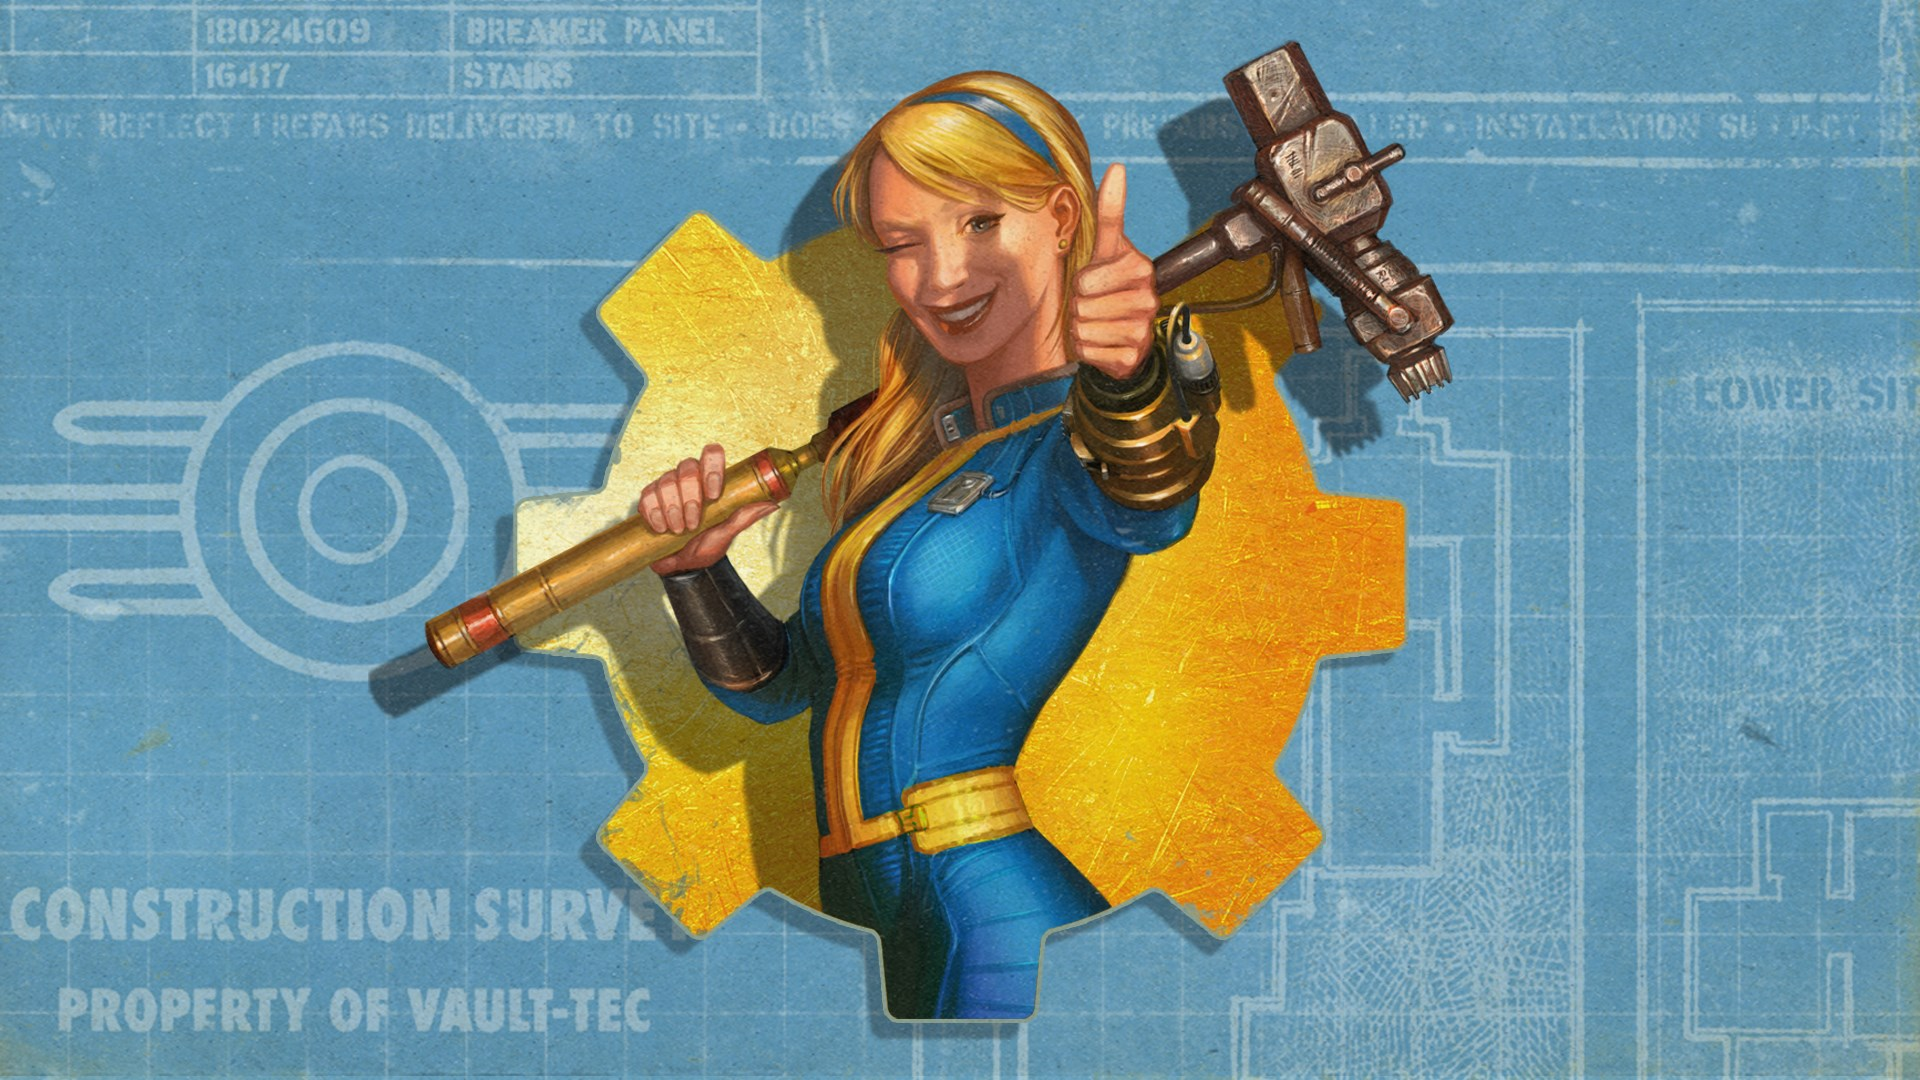 A blond woman holding a power hammer stands dressed in a blue and yellow jumpsuit.